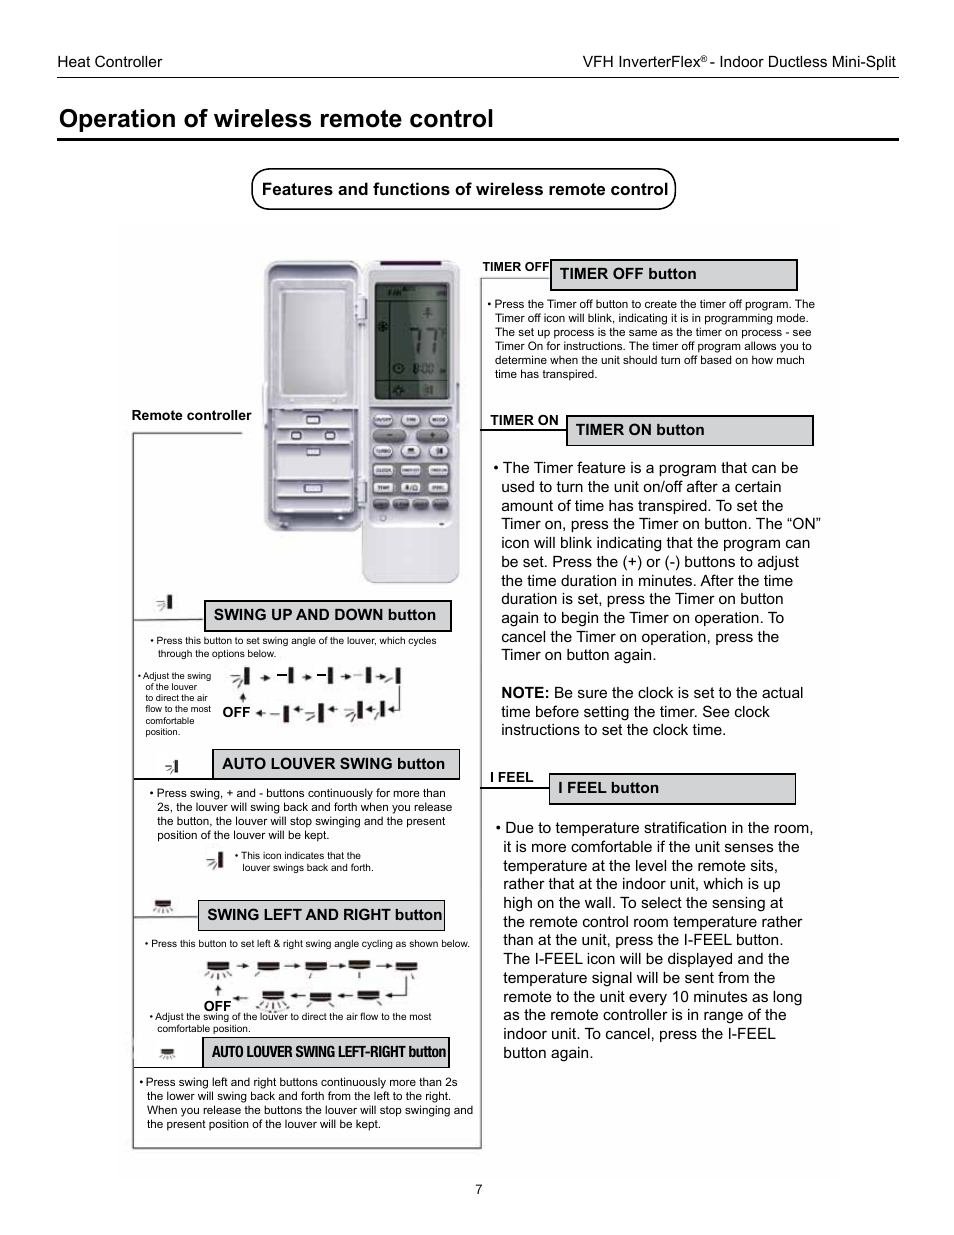 Operation of wireless remote control, Features and functions